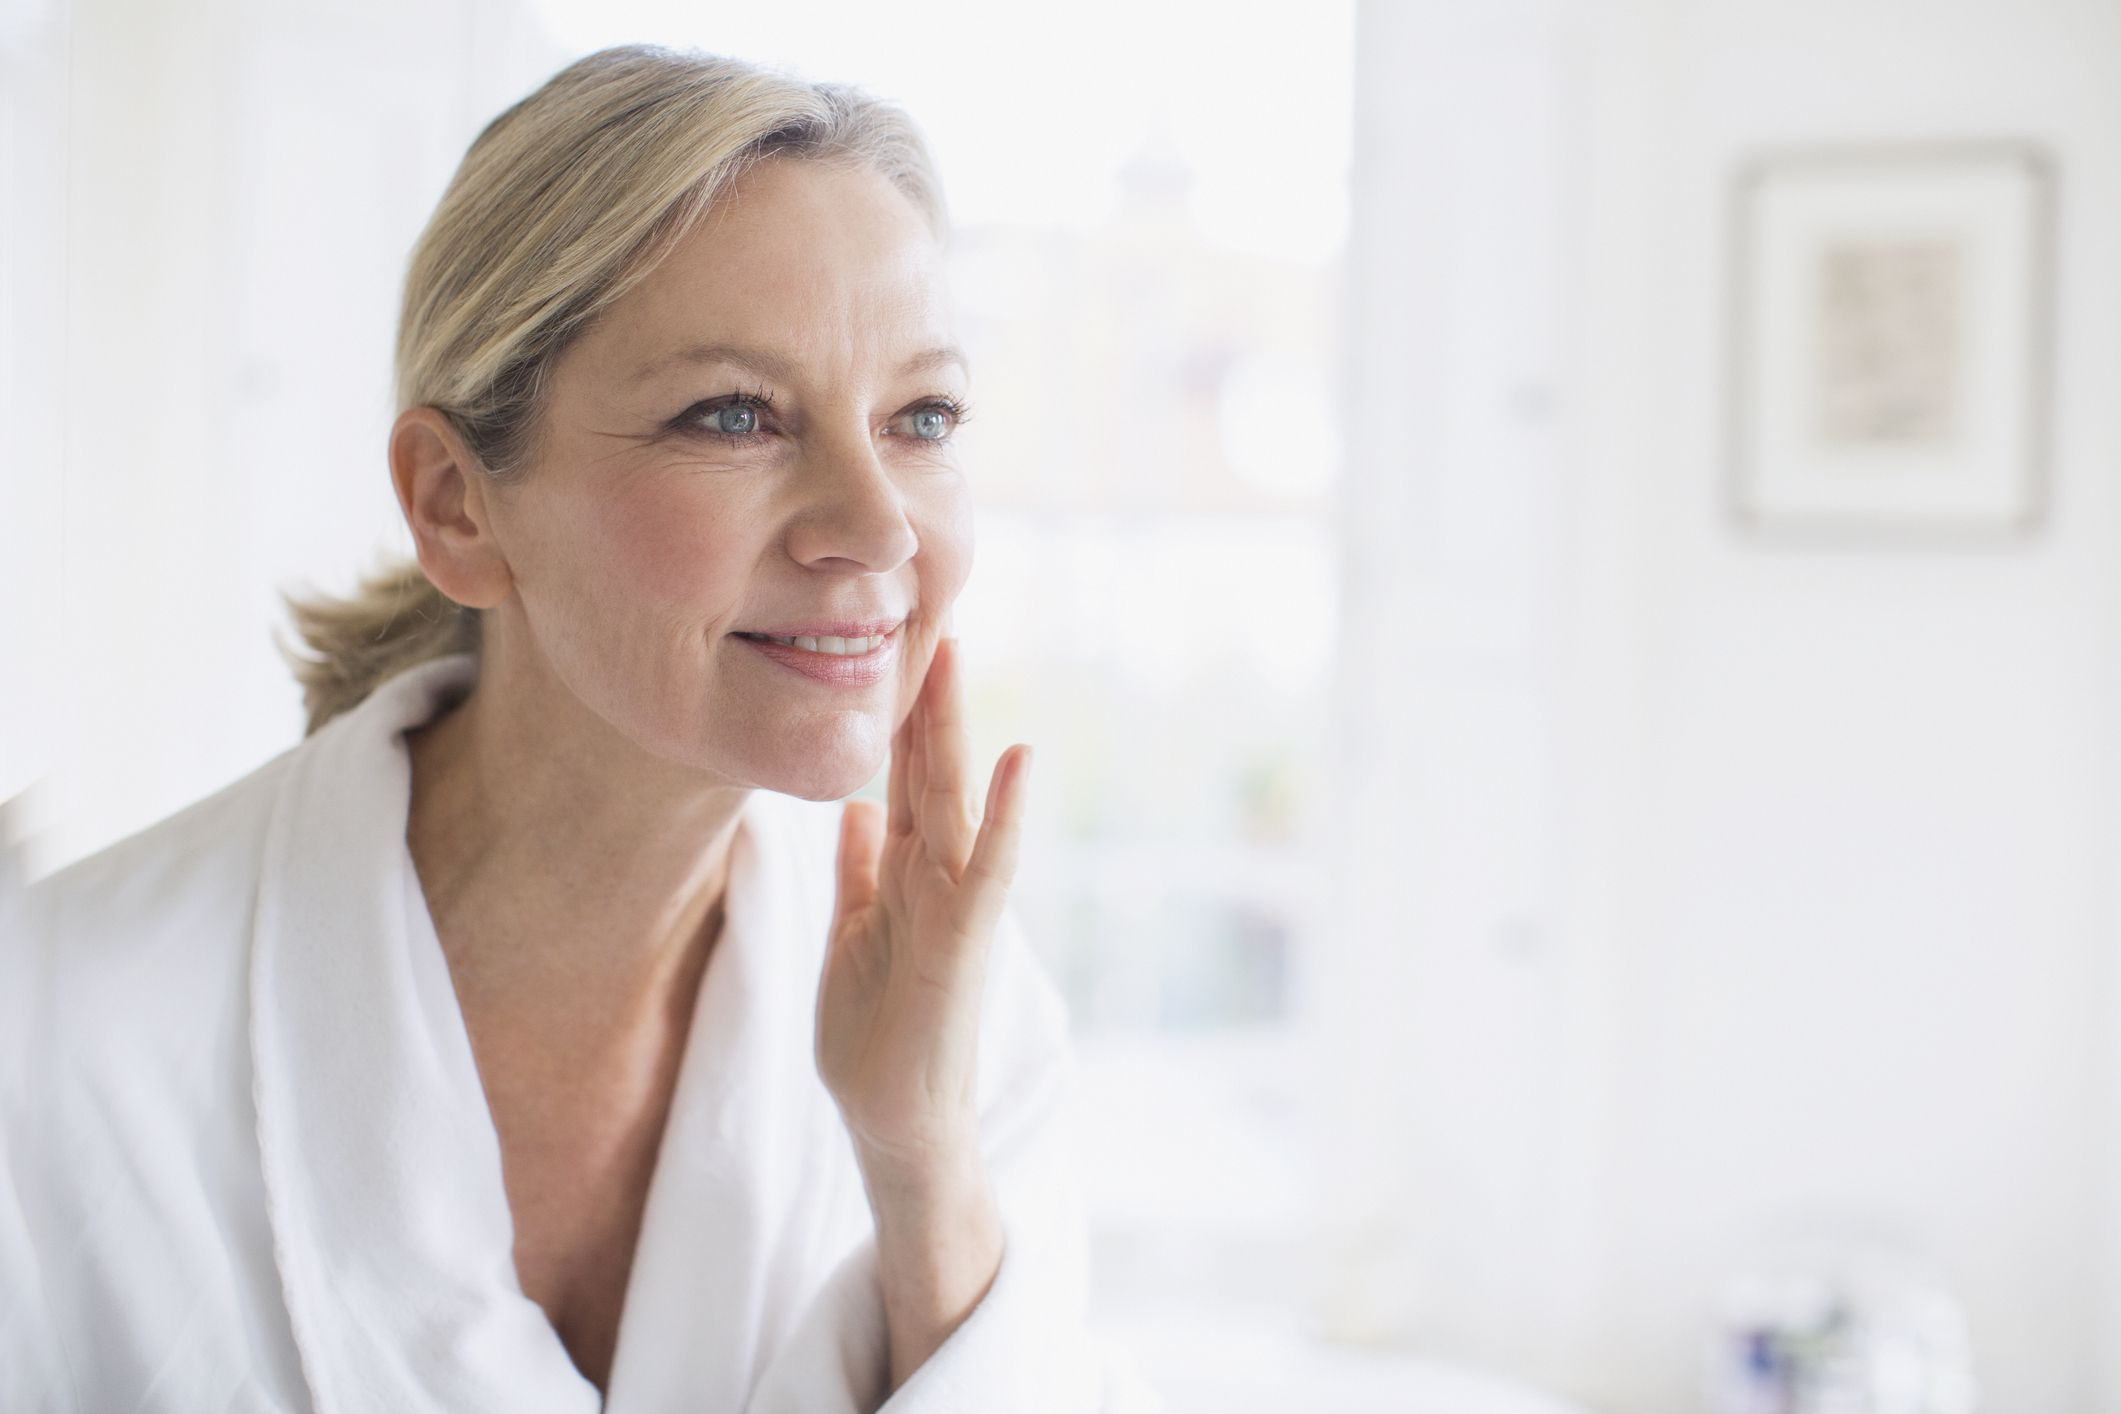 Should You Add Hyaluronic Acid To Your Skincare Routine